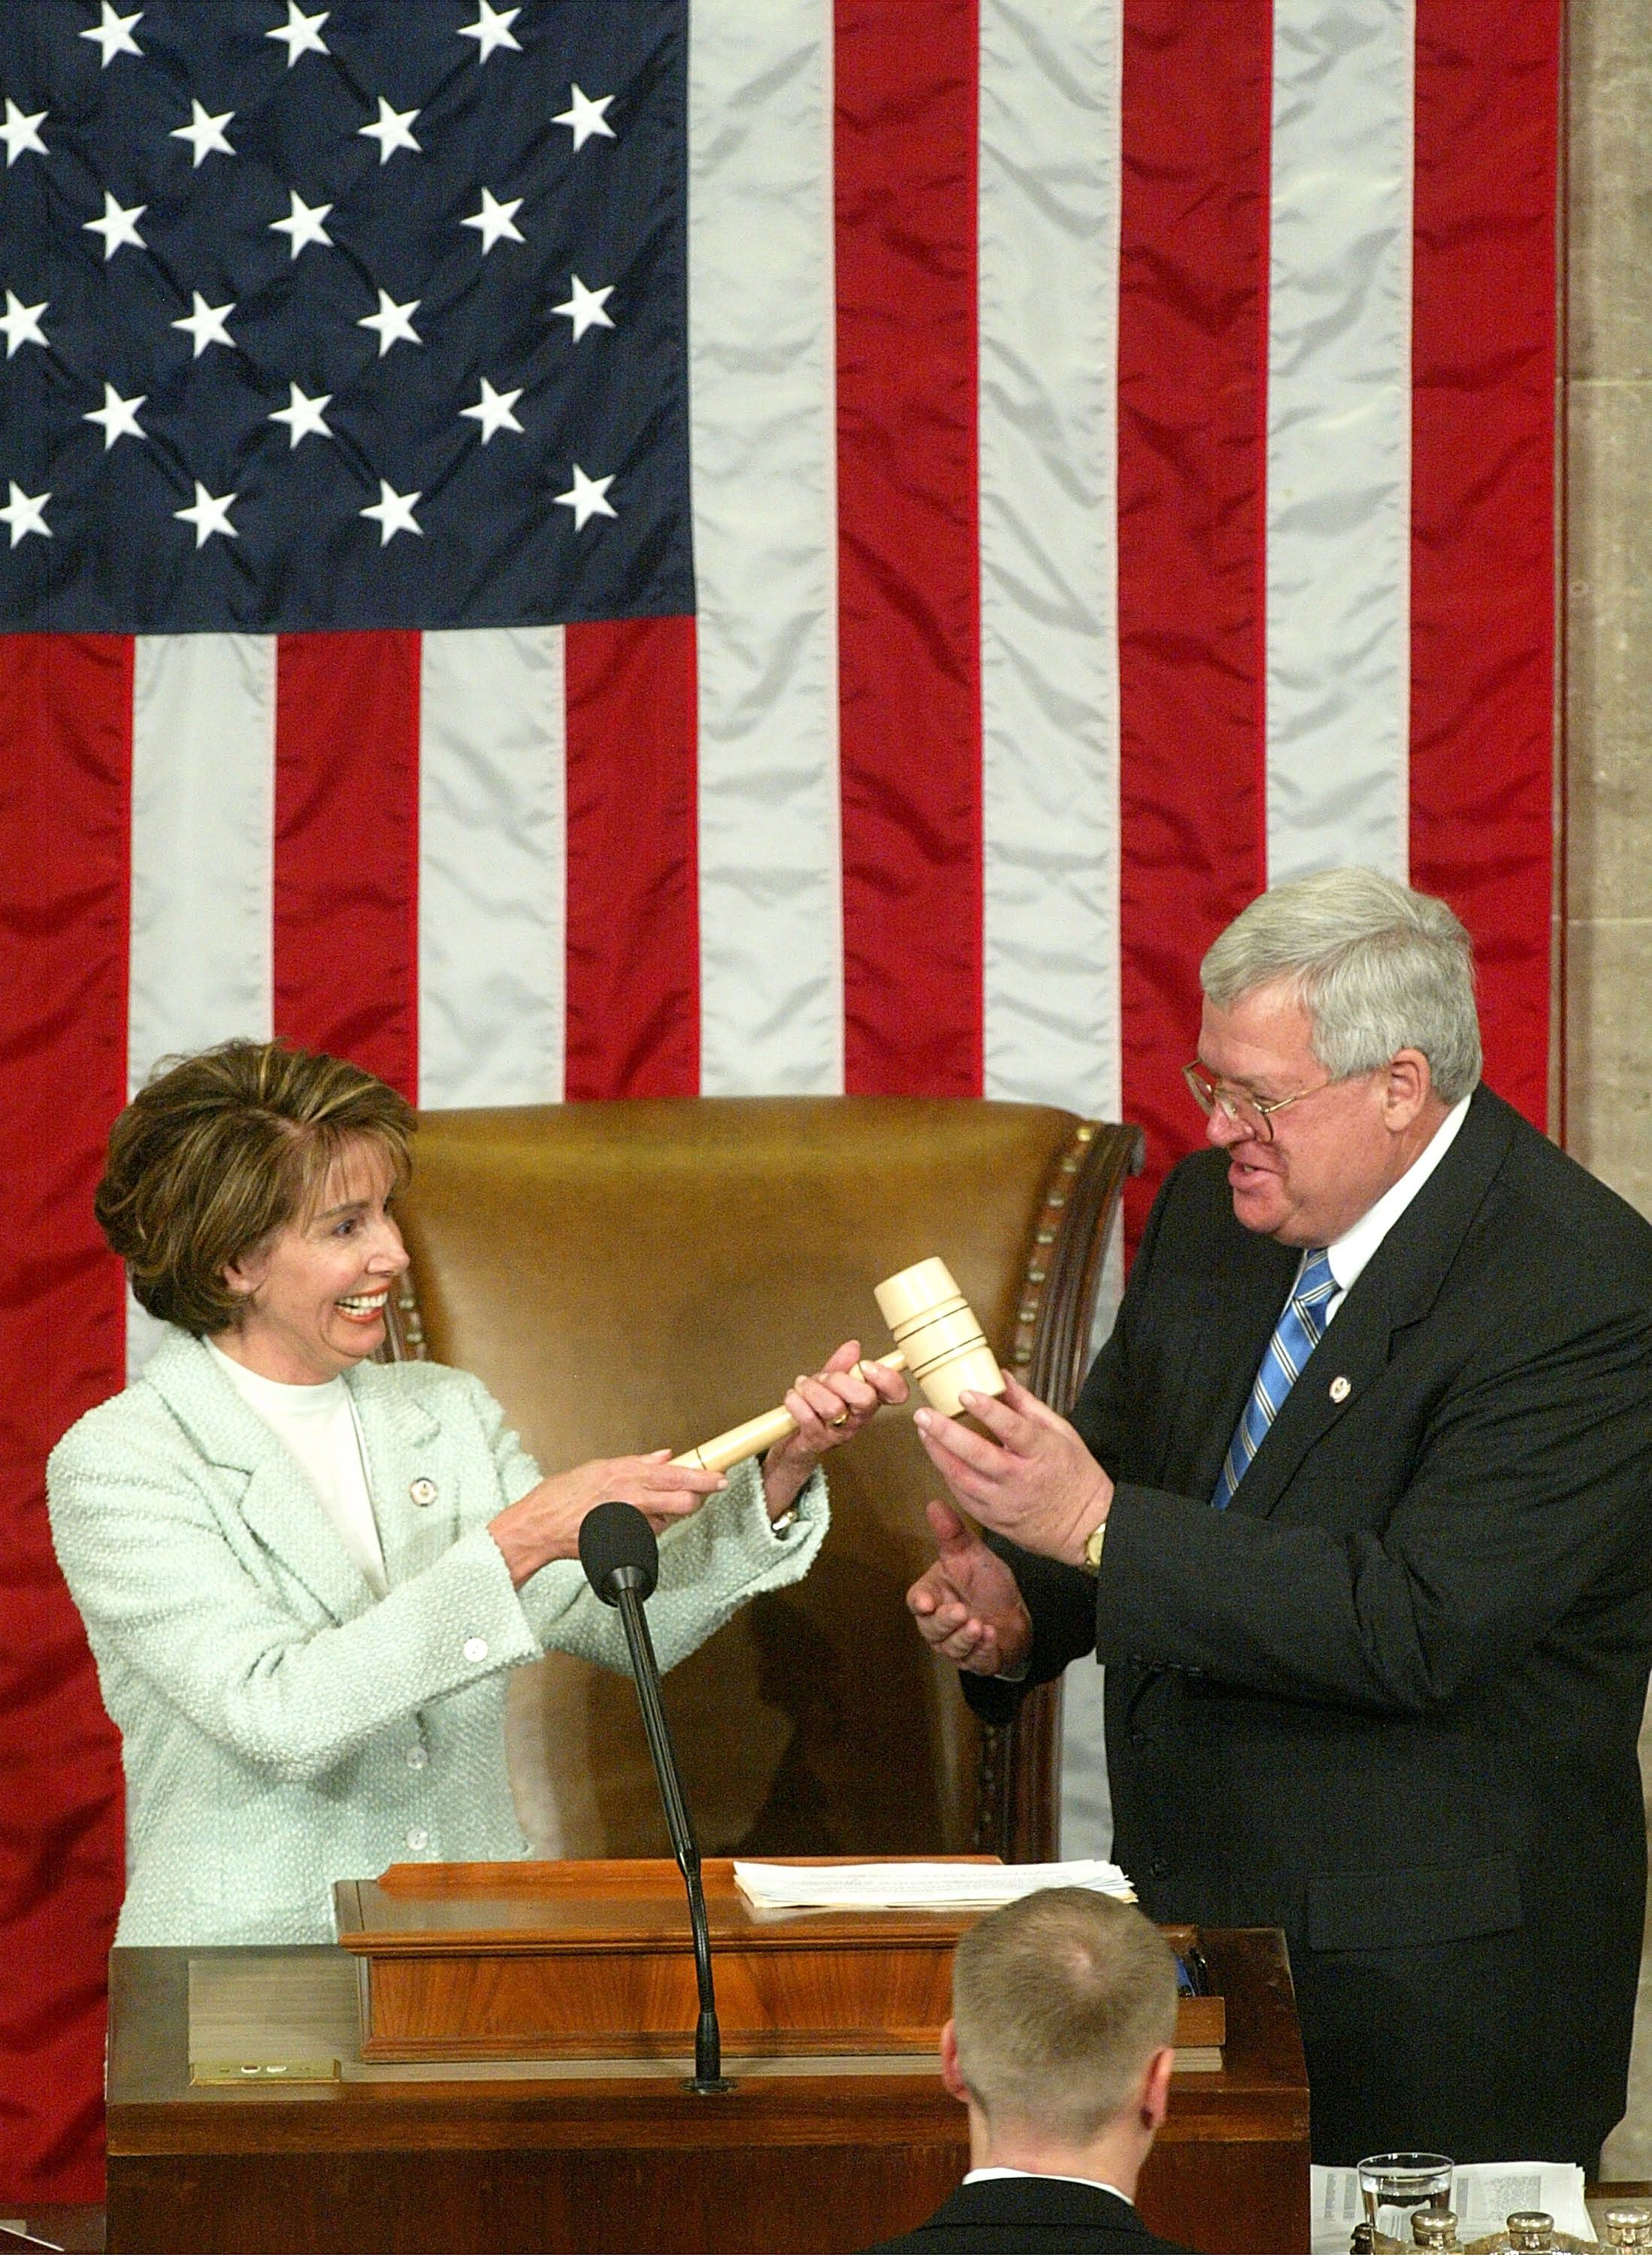 Pelosi is sworn in as House Minority Leader during the opening day of the 108th Congress.